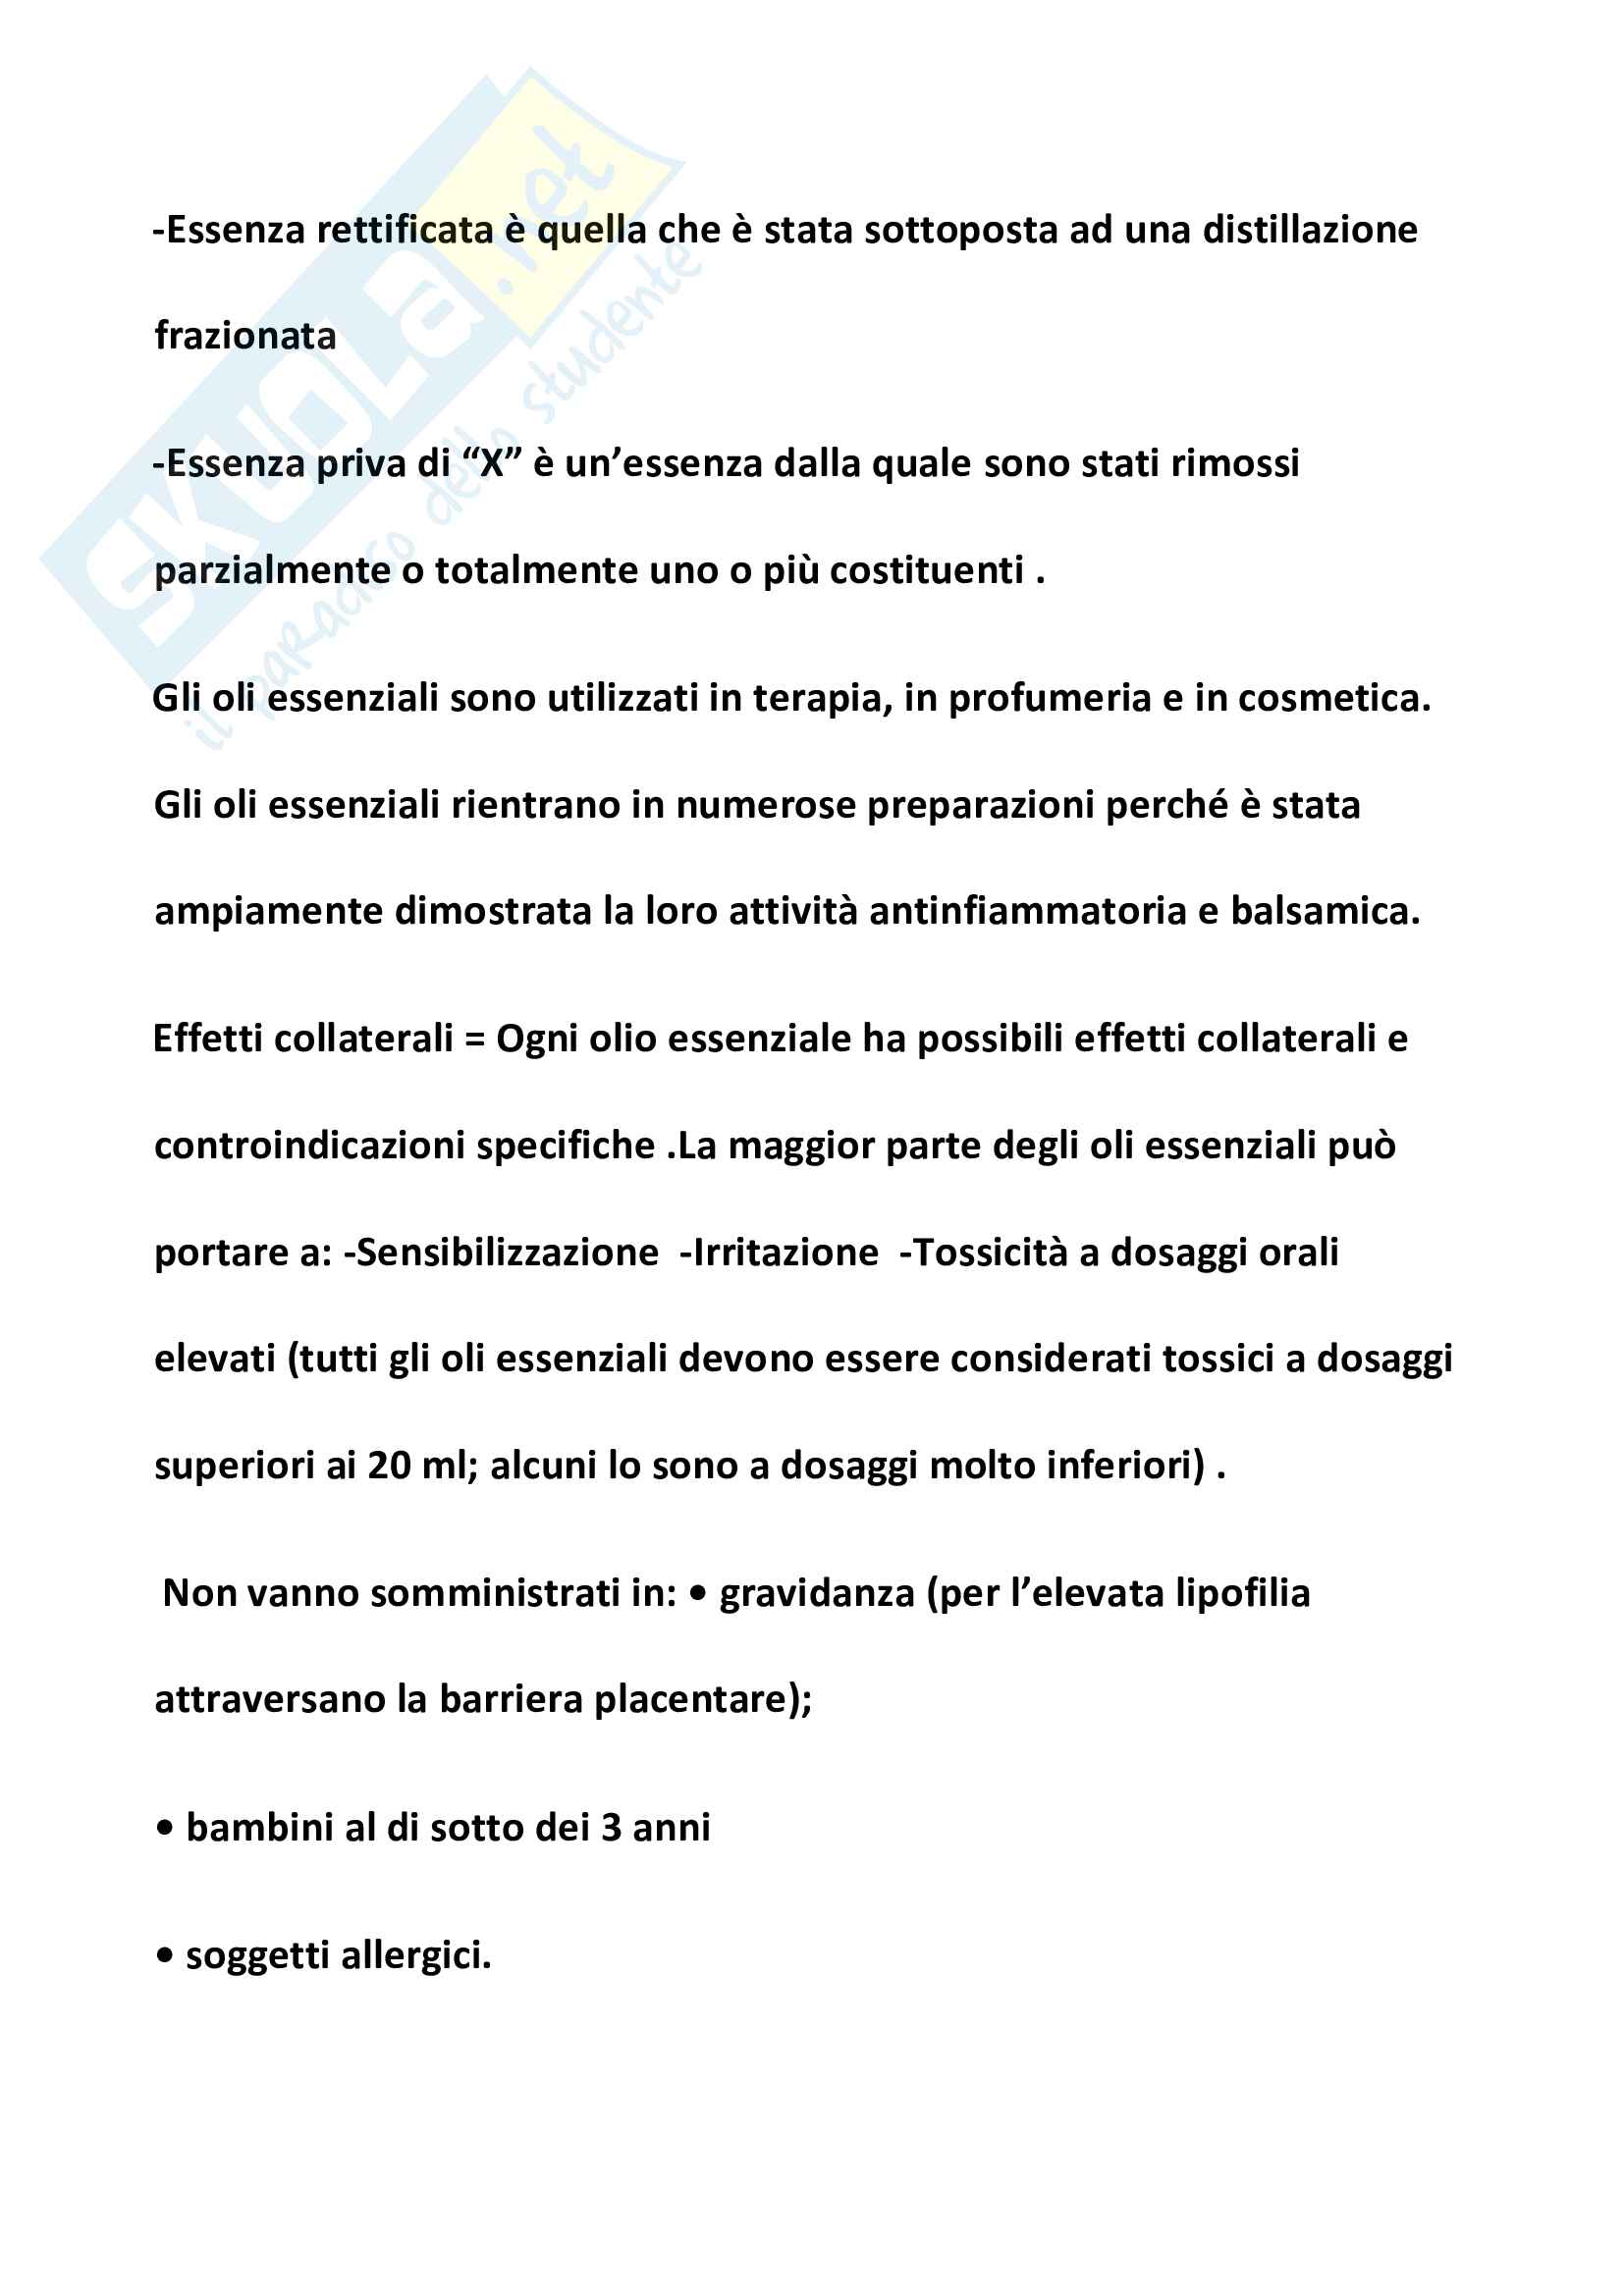 Appunti farmacognosia Pag. 6